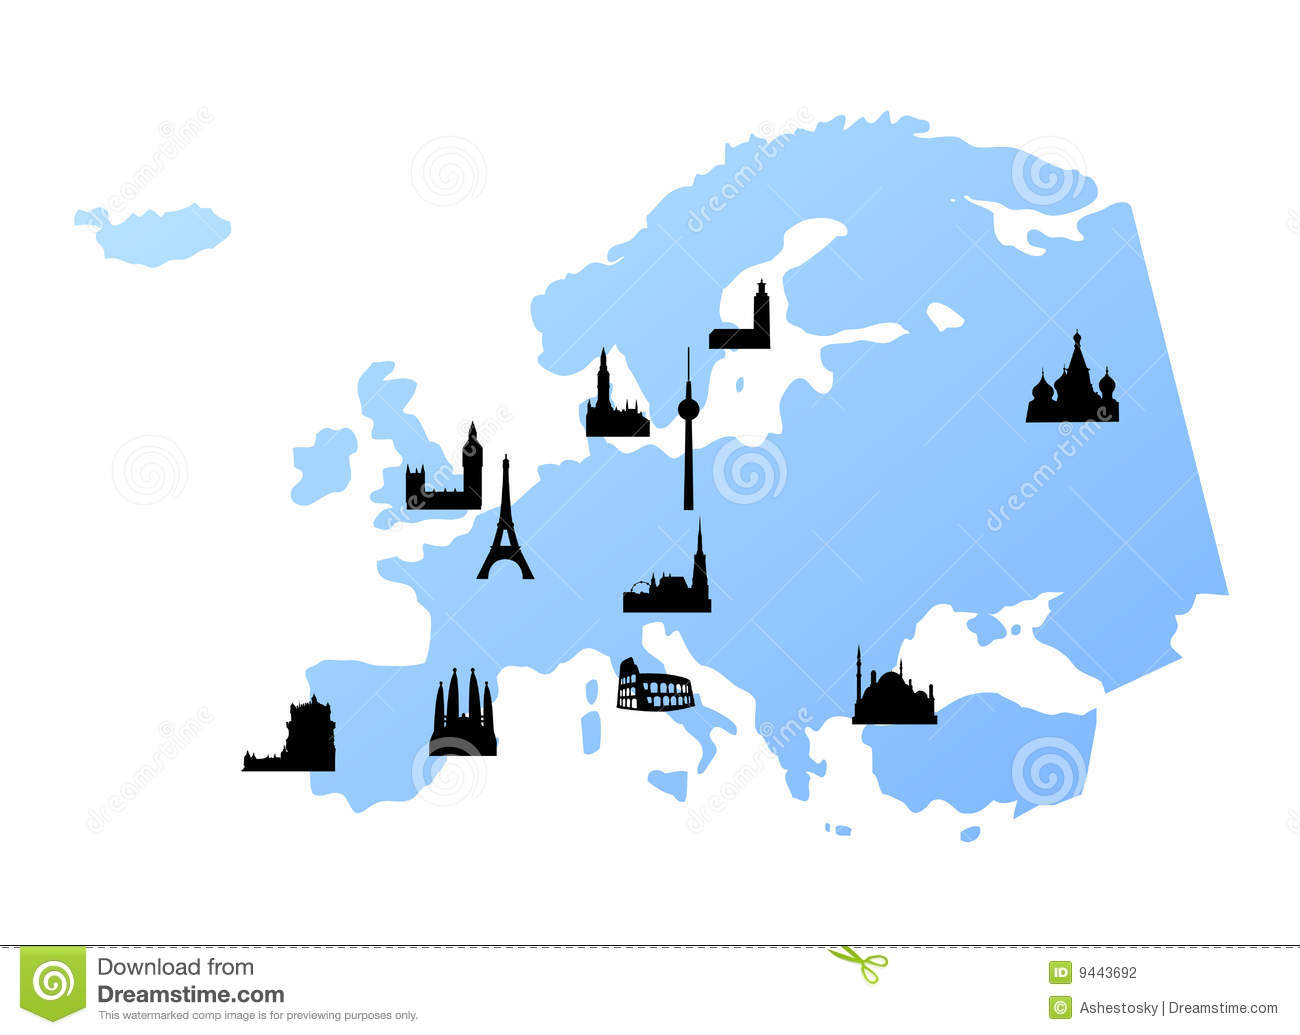 Europe Map With Landmarks Stock Photography - Image: 9443692